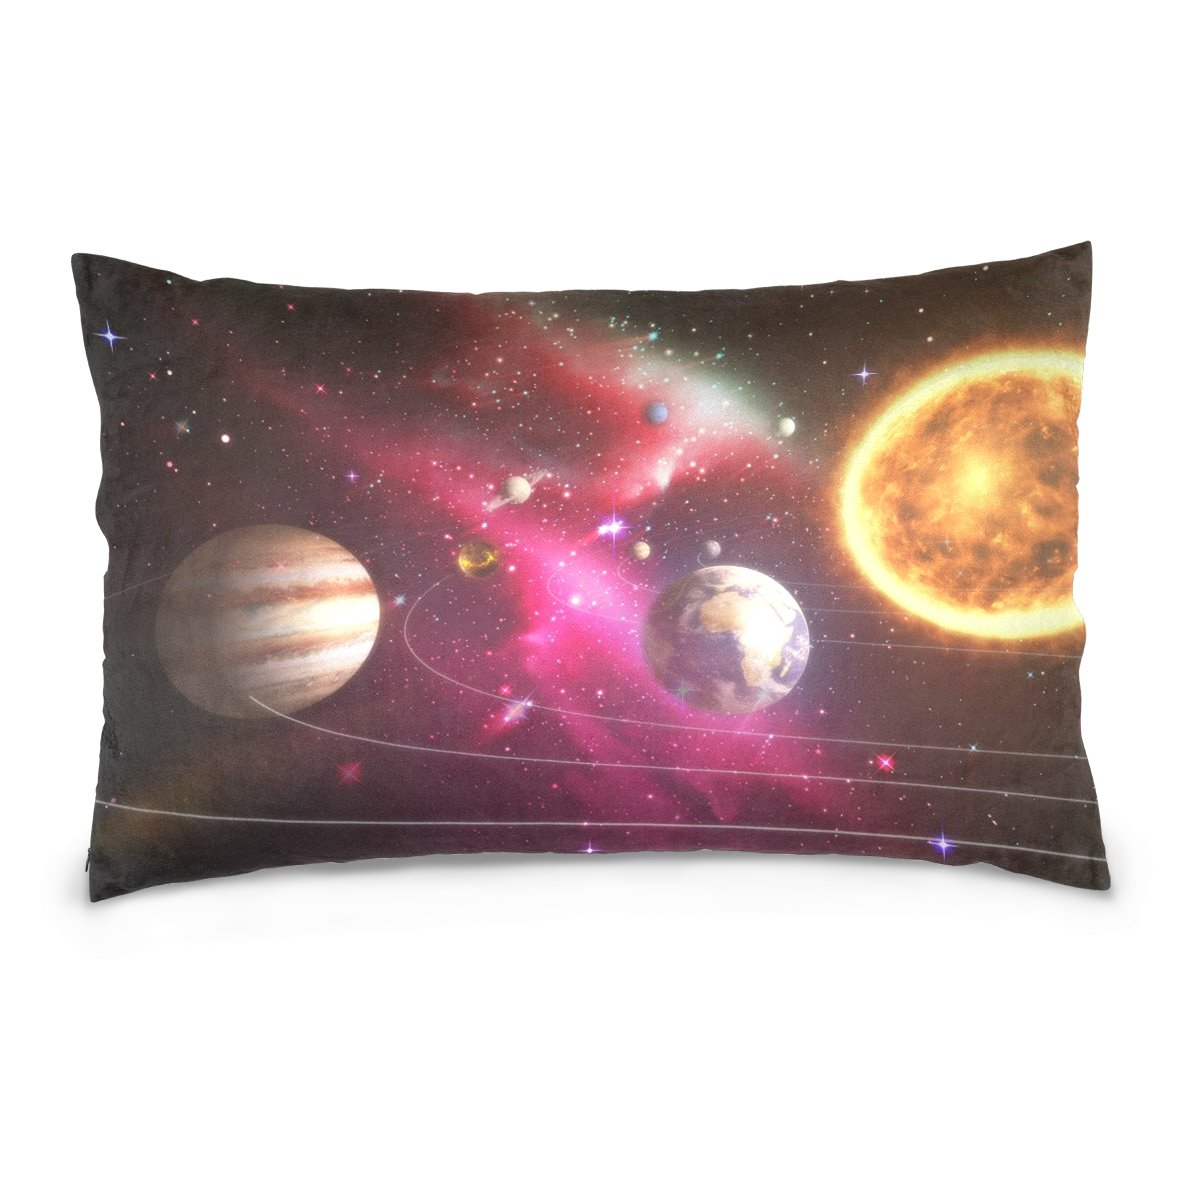 ALAZA Solar System Planet Universe Cotton Lint Pillow Case,Double-sided Printing Home Decor Pillowcase Size 16''x24'',for Bedroom Women Girl Boy